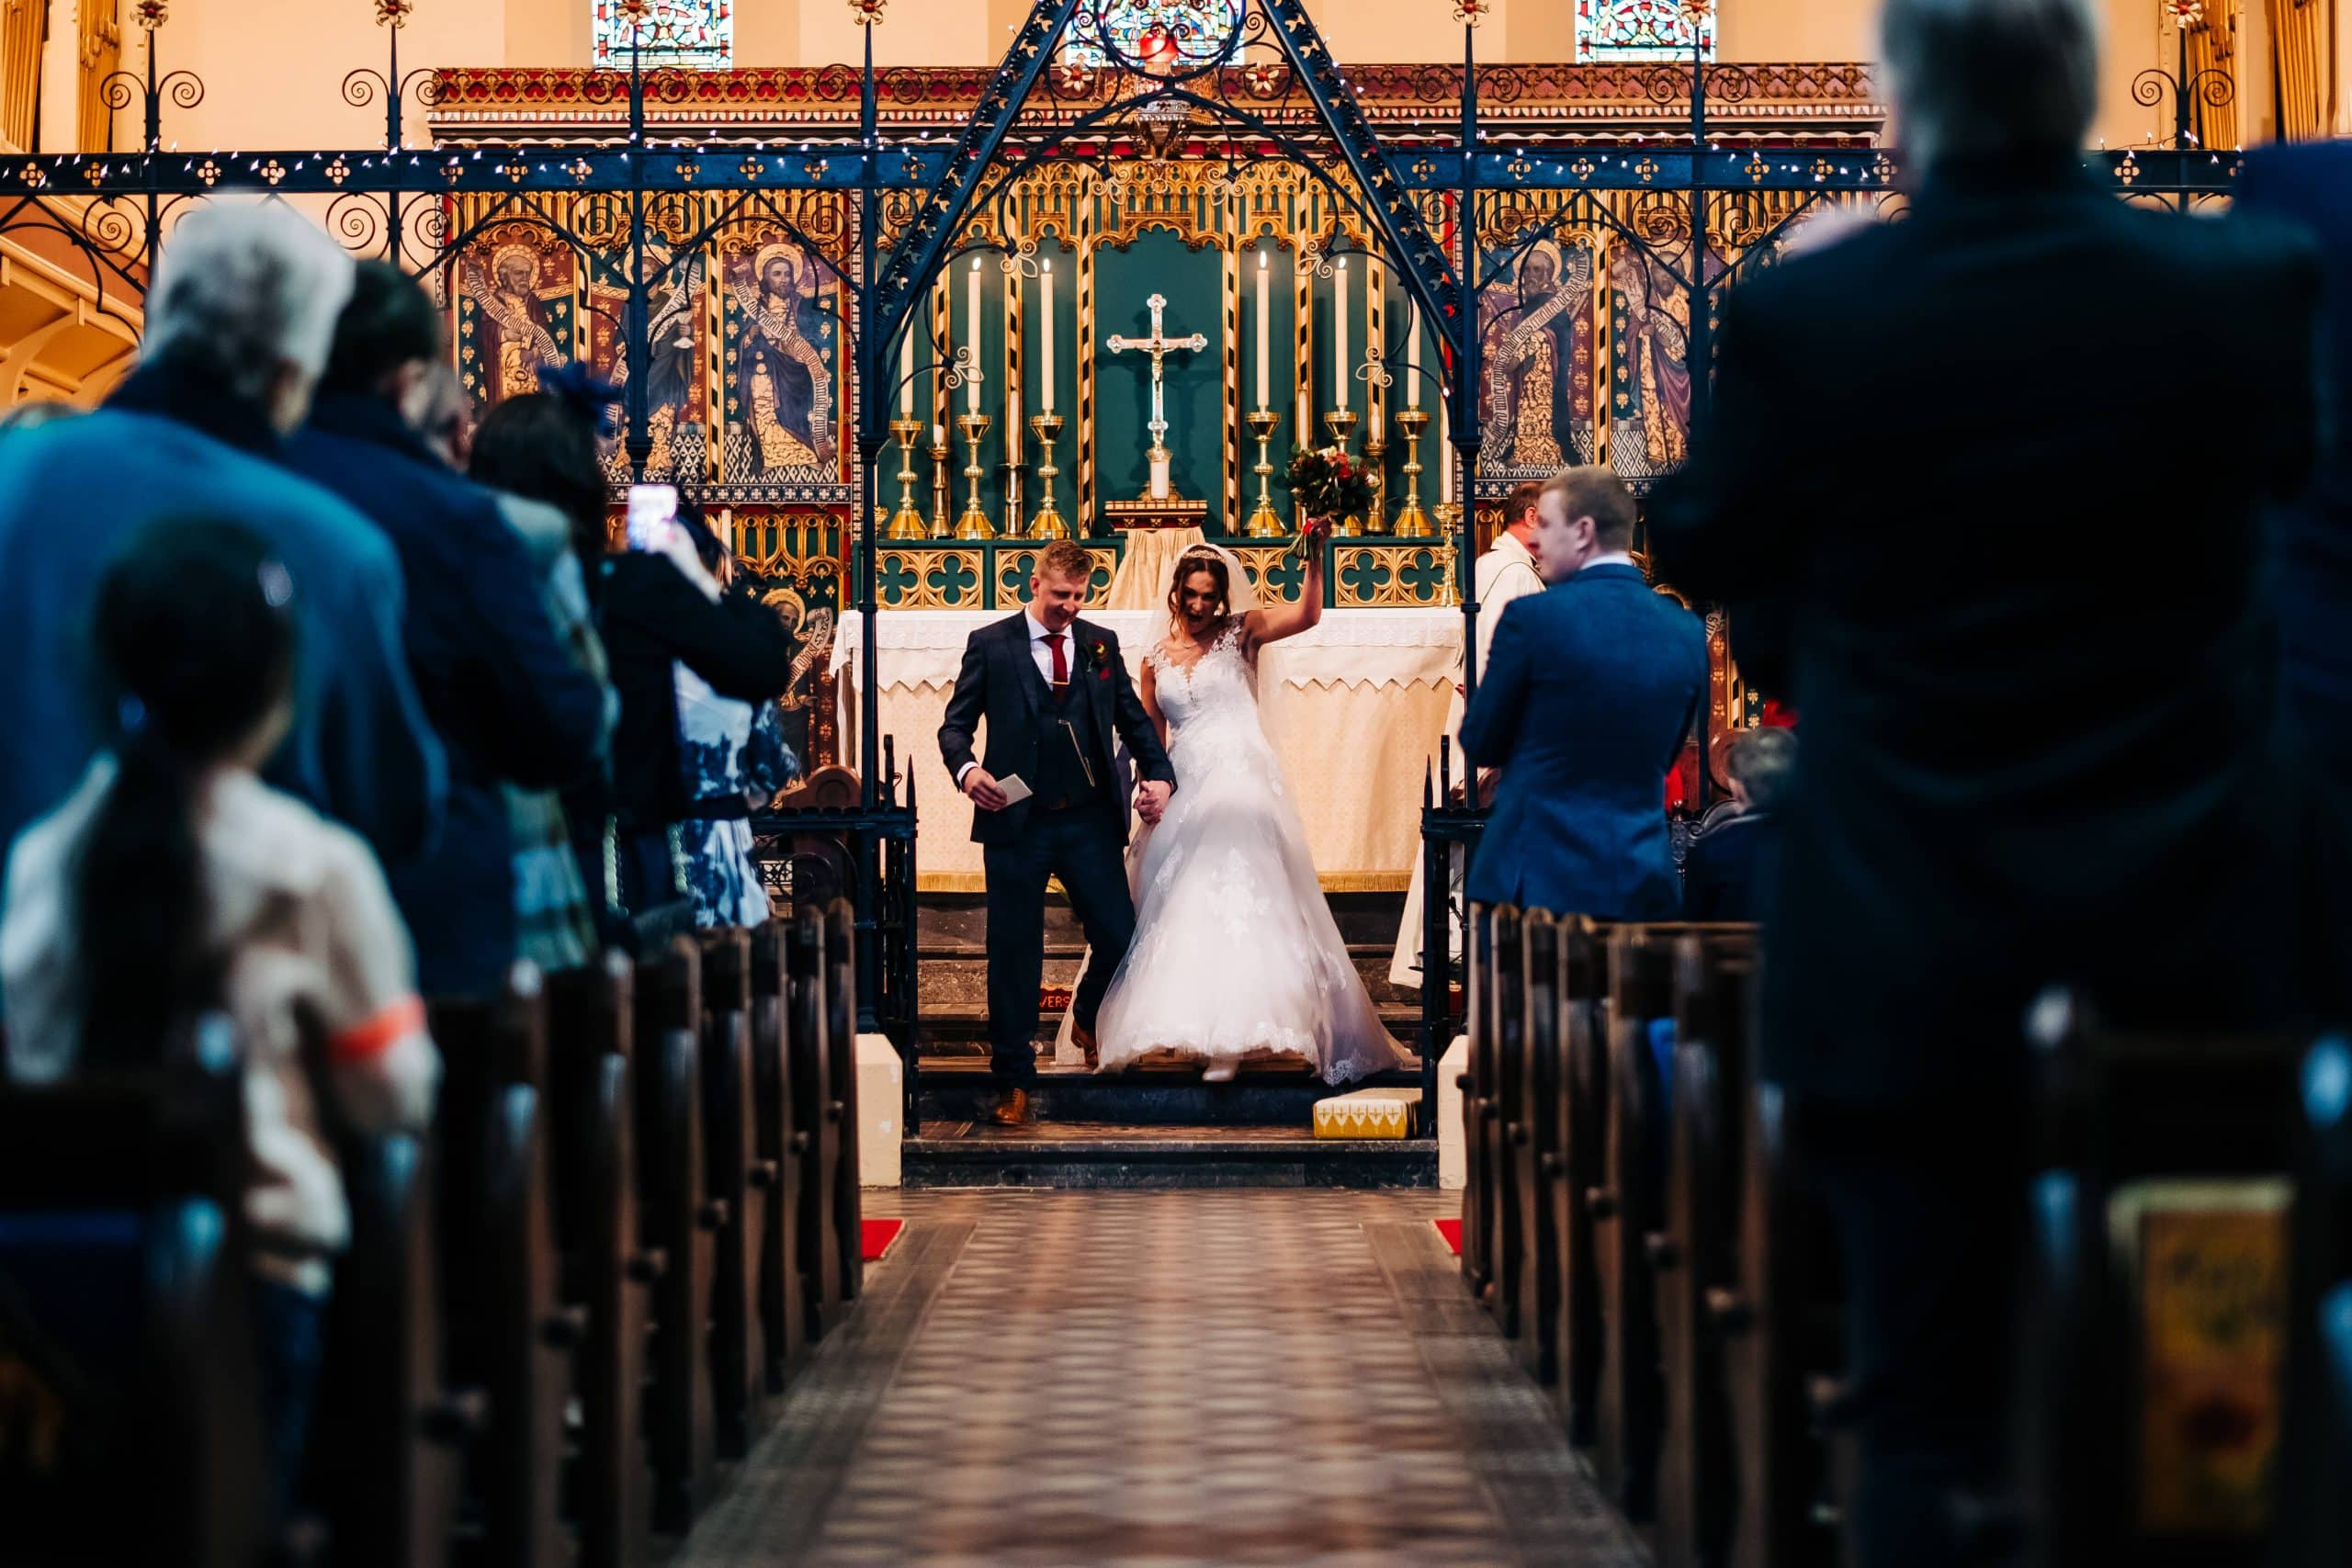 church wedding , local wedding photographer, derbyshire weddings